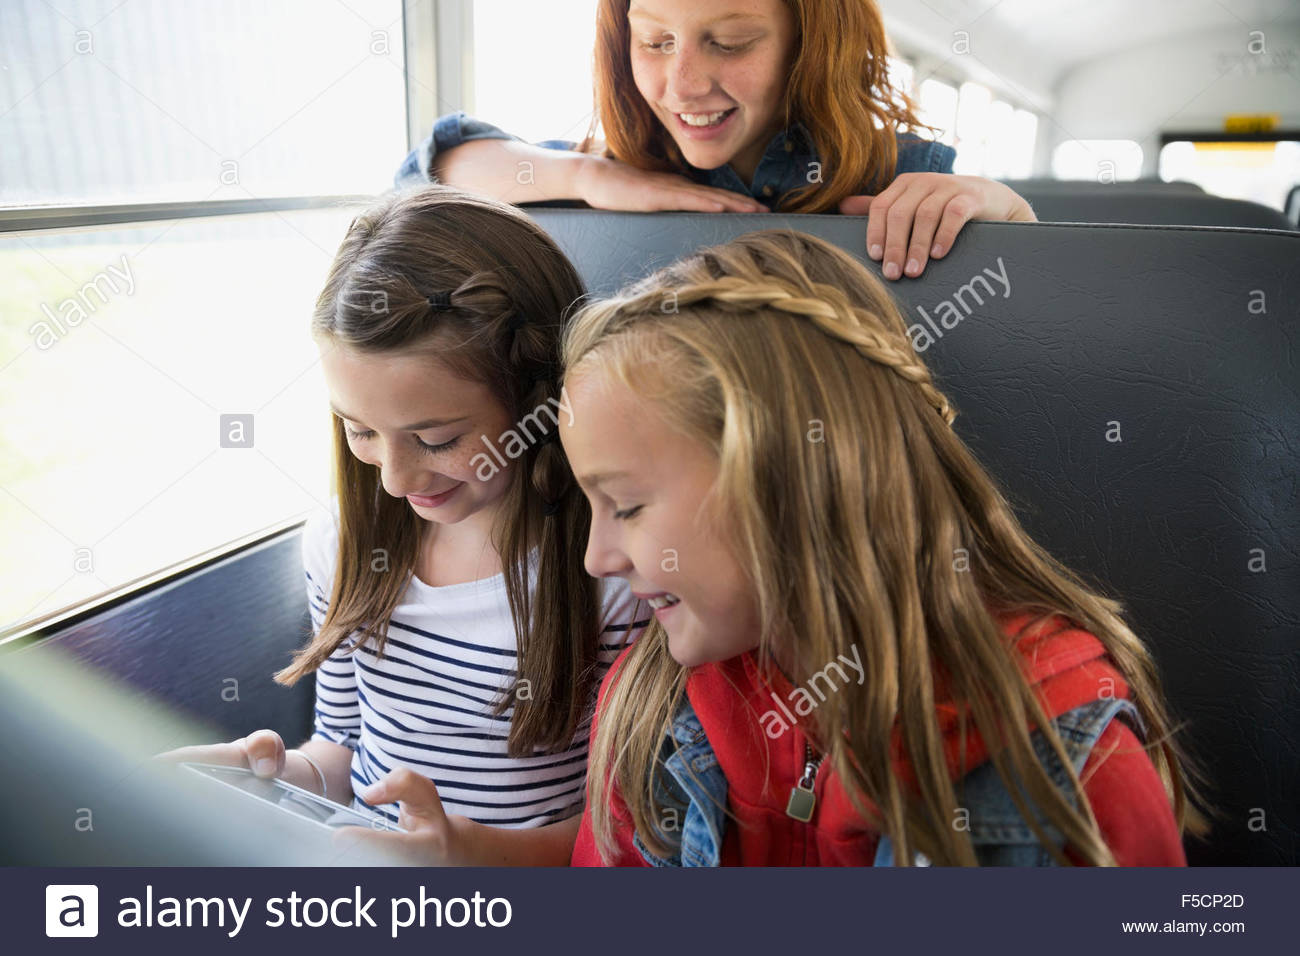 Schoolgirls texting with cell phone on school bus - Stock Image